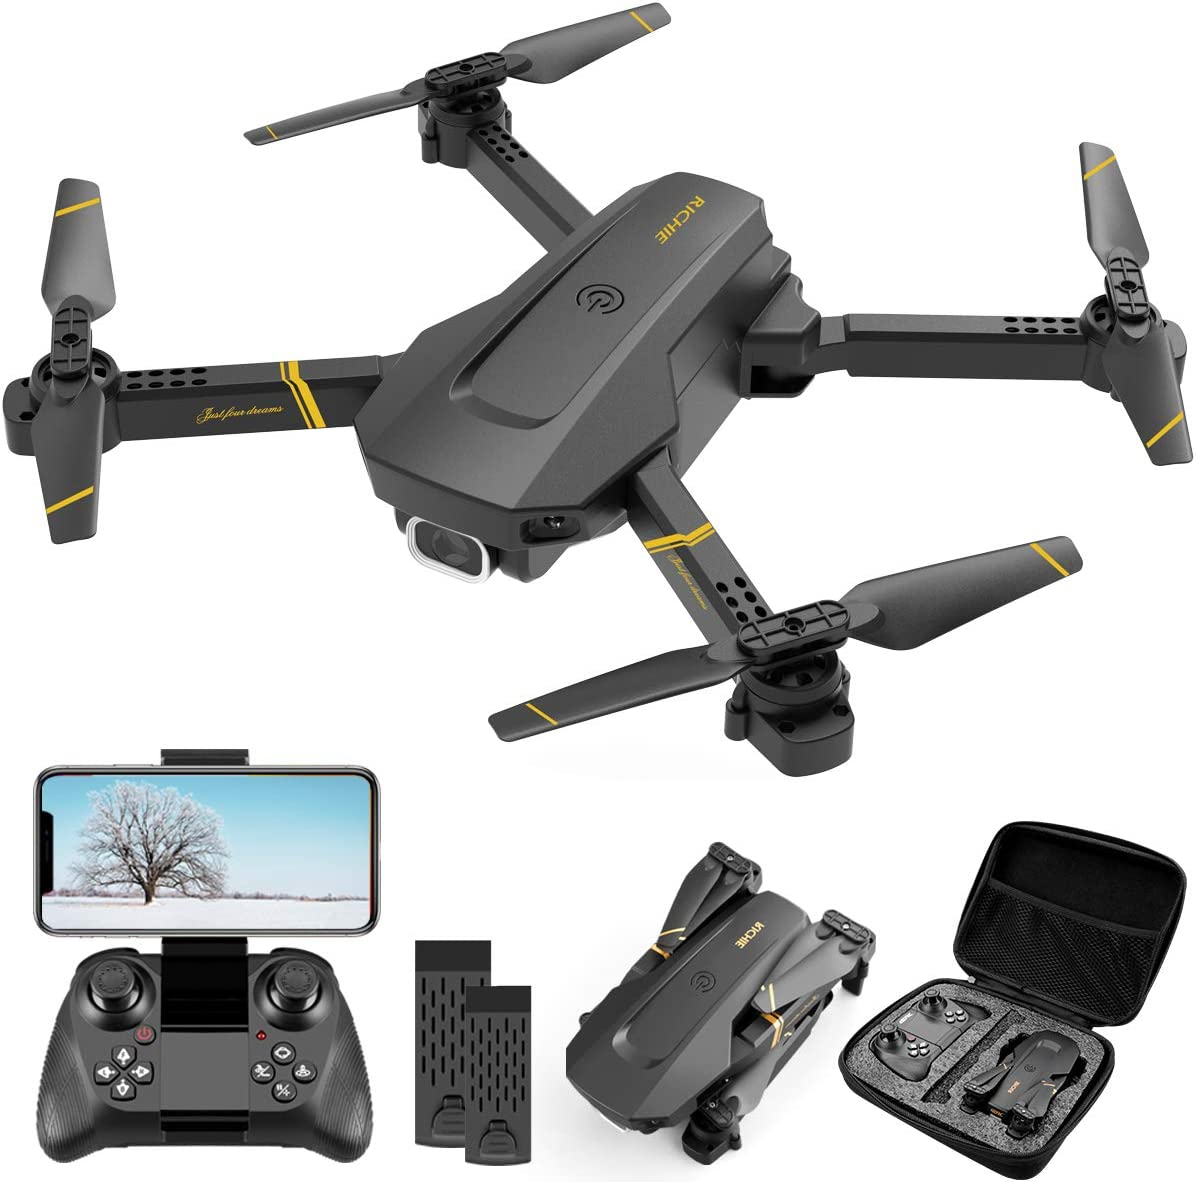 4DRC V4 Drone with 1080P HD Camera for Adults and Kids, Foldable Quadcopter with Wide Angle FPV Live Video, Trajectory Flight, App Control,Optical Flow, Altitude Hold and 2 Modular Batteries